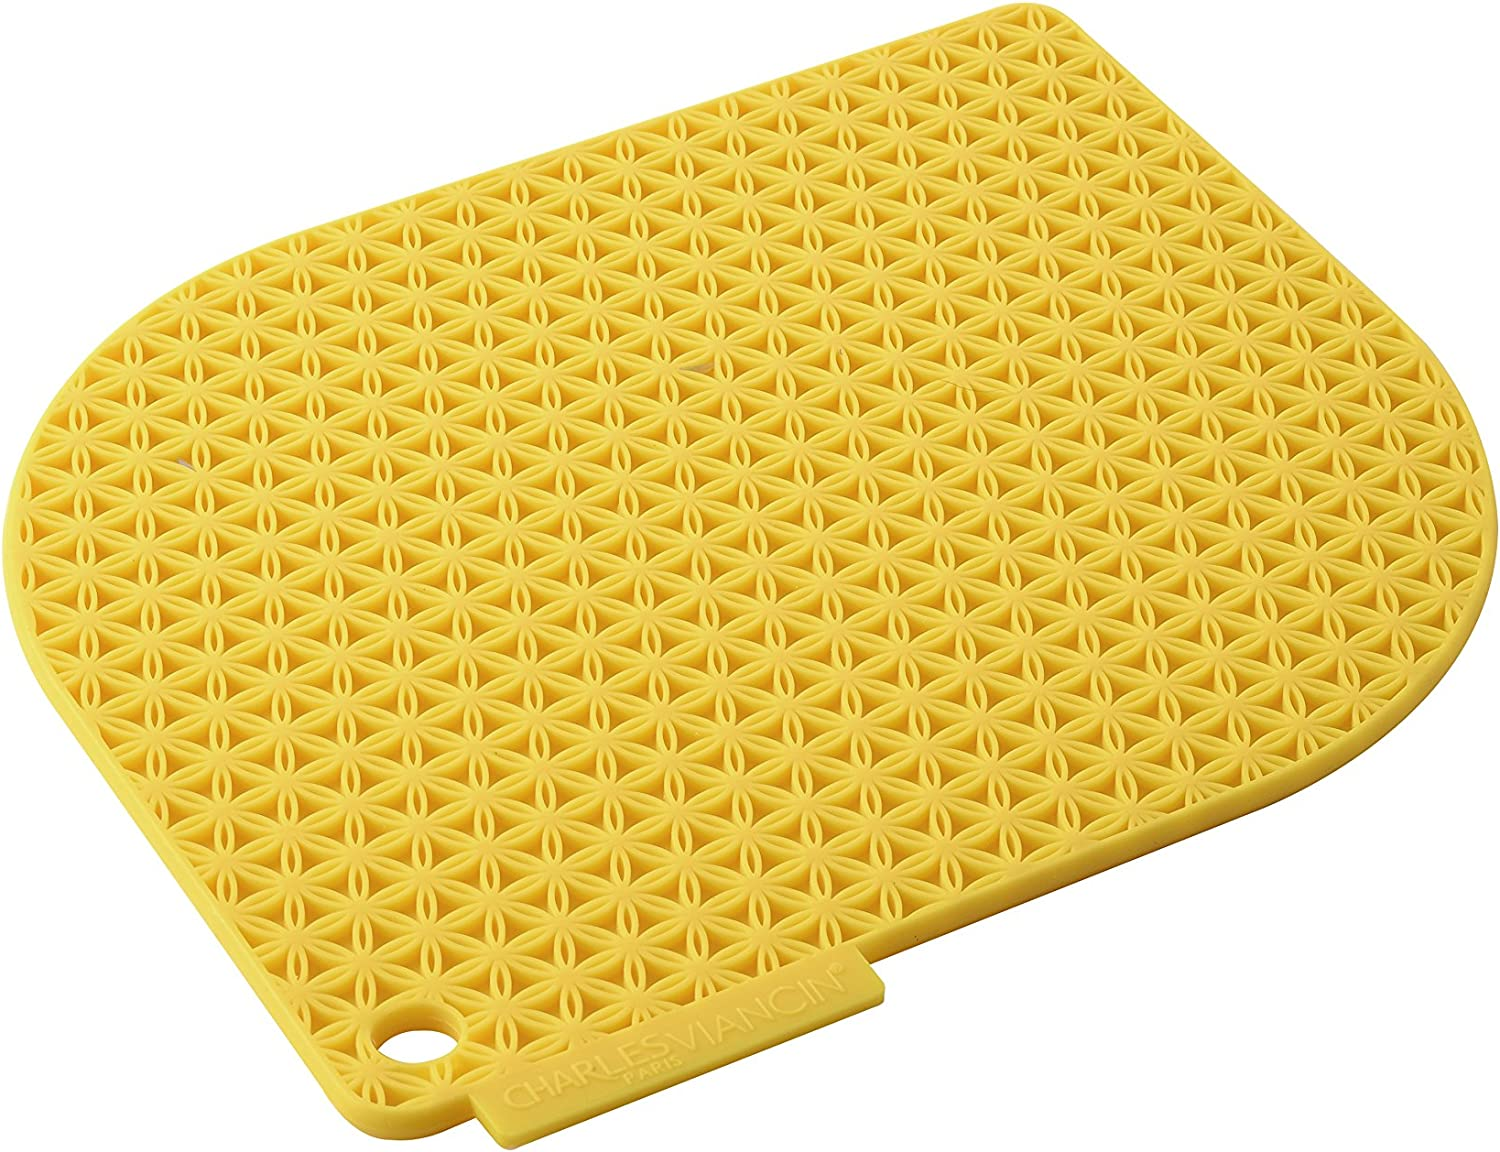 Charles Viancin - Honeycomb Silicone Pot Holder - Withstands Temperatures up to 220°C / 428°F - BPA-Free, Plastic Free, Food-Grade Silicone - Dishwasher Safe - Yellow Macaron